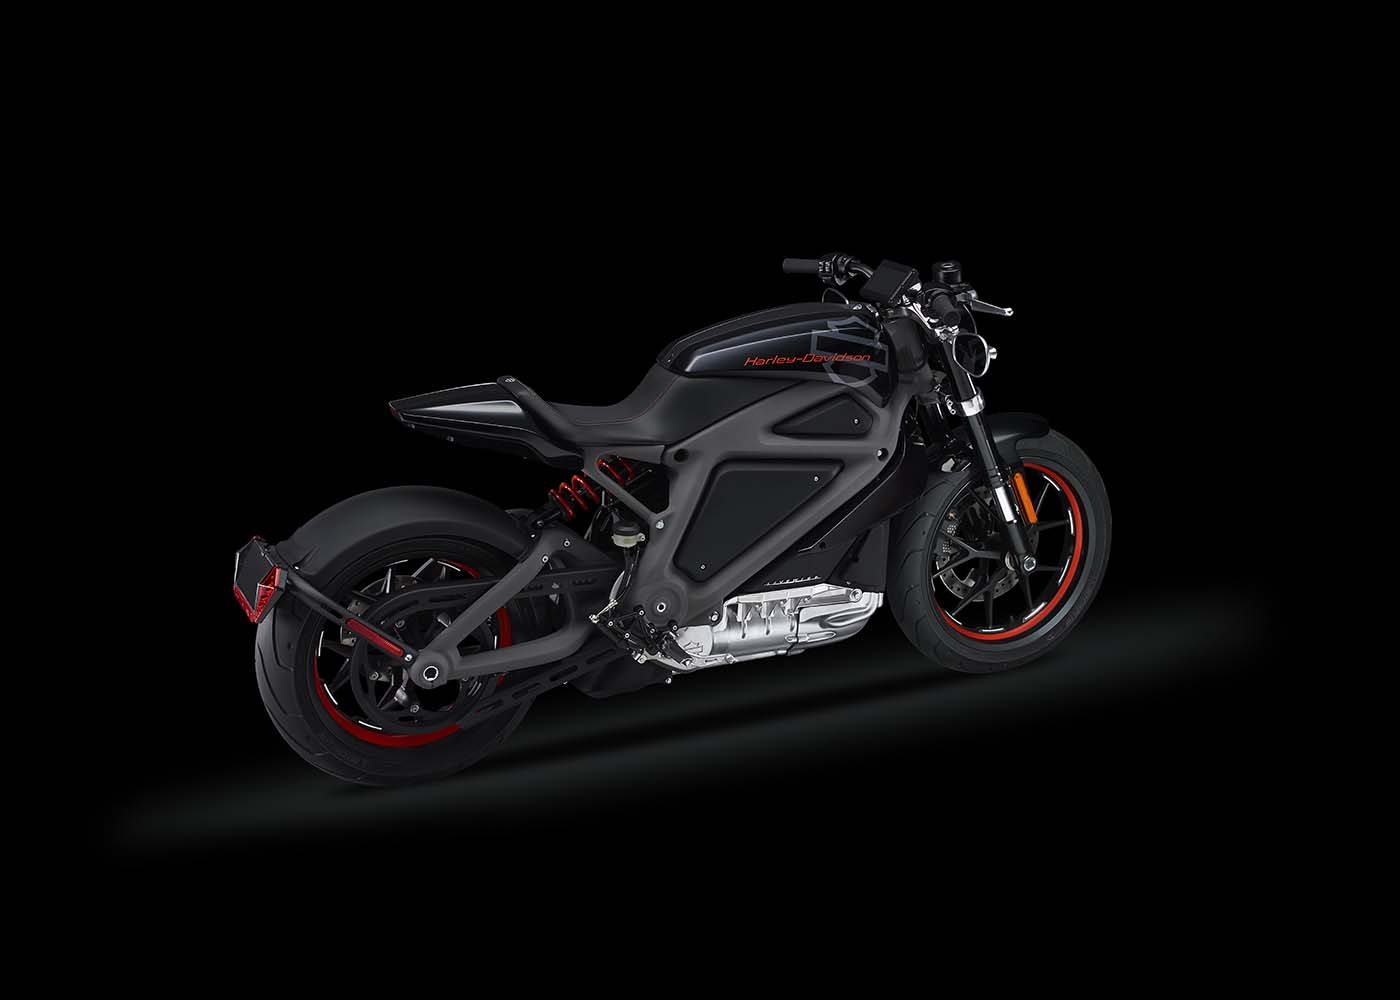 Harley-Davidson confirms electric motorcycle heading to